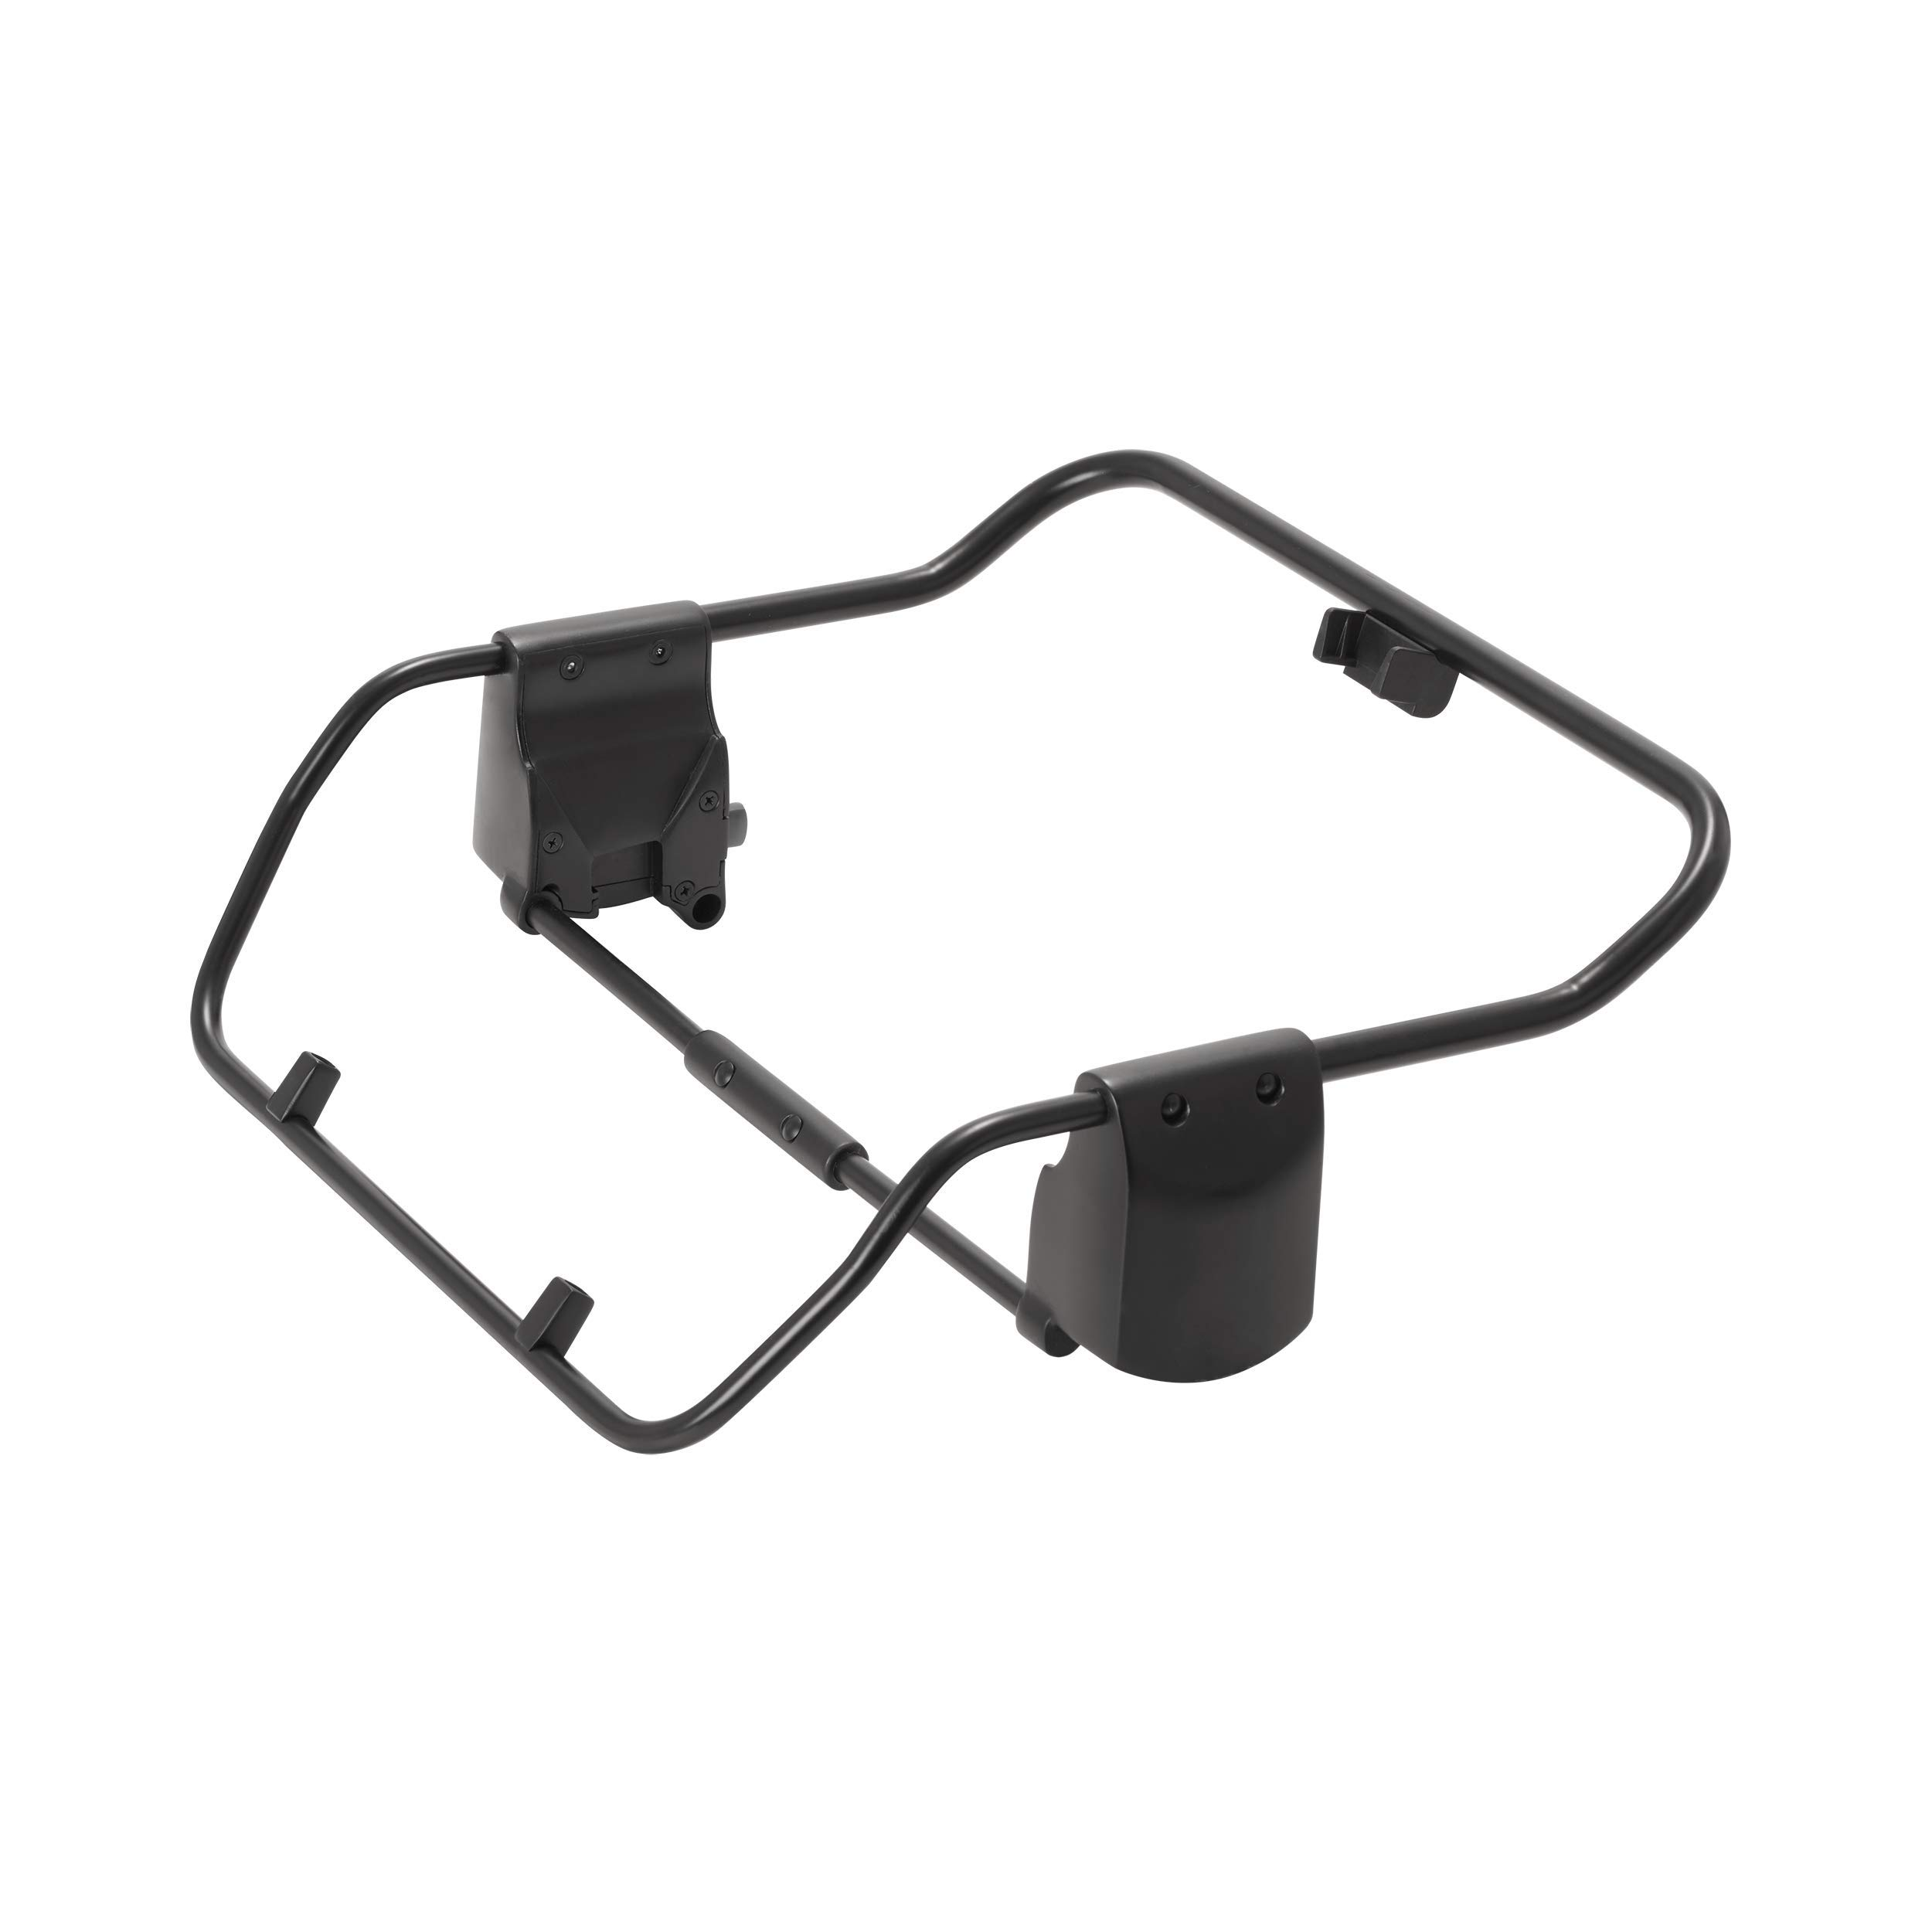 Evenflo Pivot Xpand Adapter Exclusively for Perego Infant Car Seats, Graco, Chicco, and Peg by Evenflo